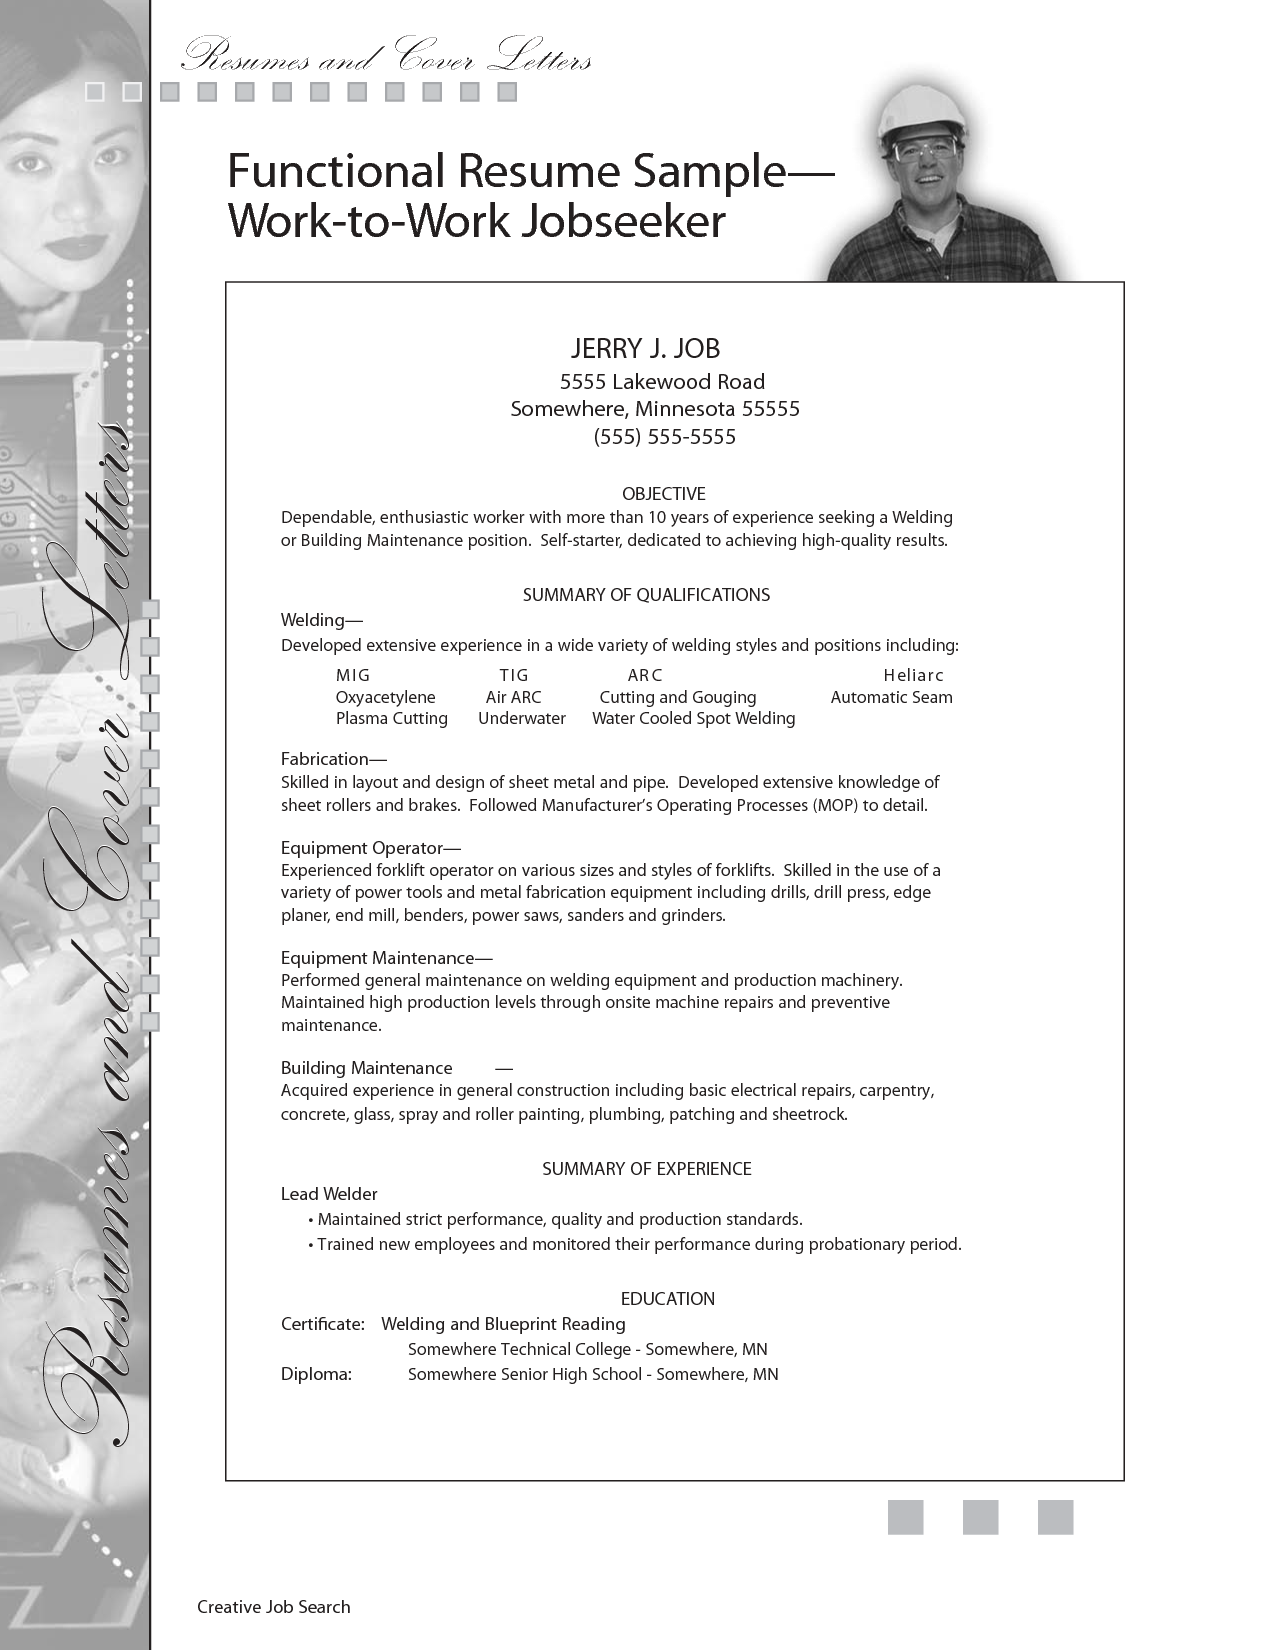 Sample resume for welding position sample building maintenance sample resume for welding position sample building maintenance resume yelopaper Gallery